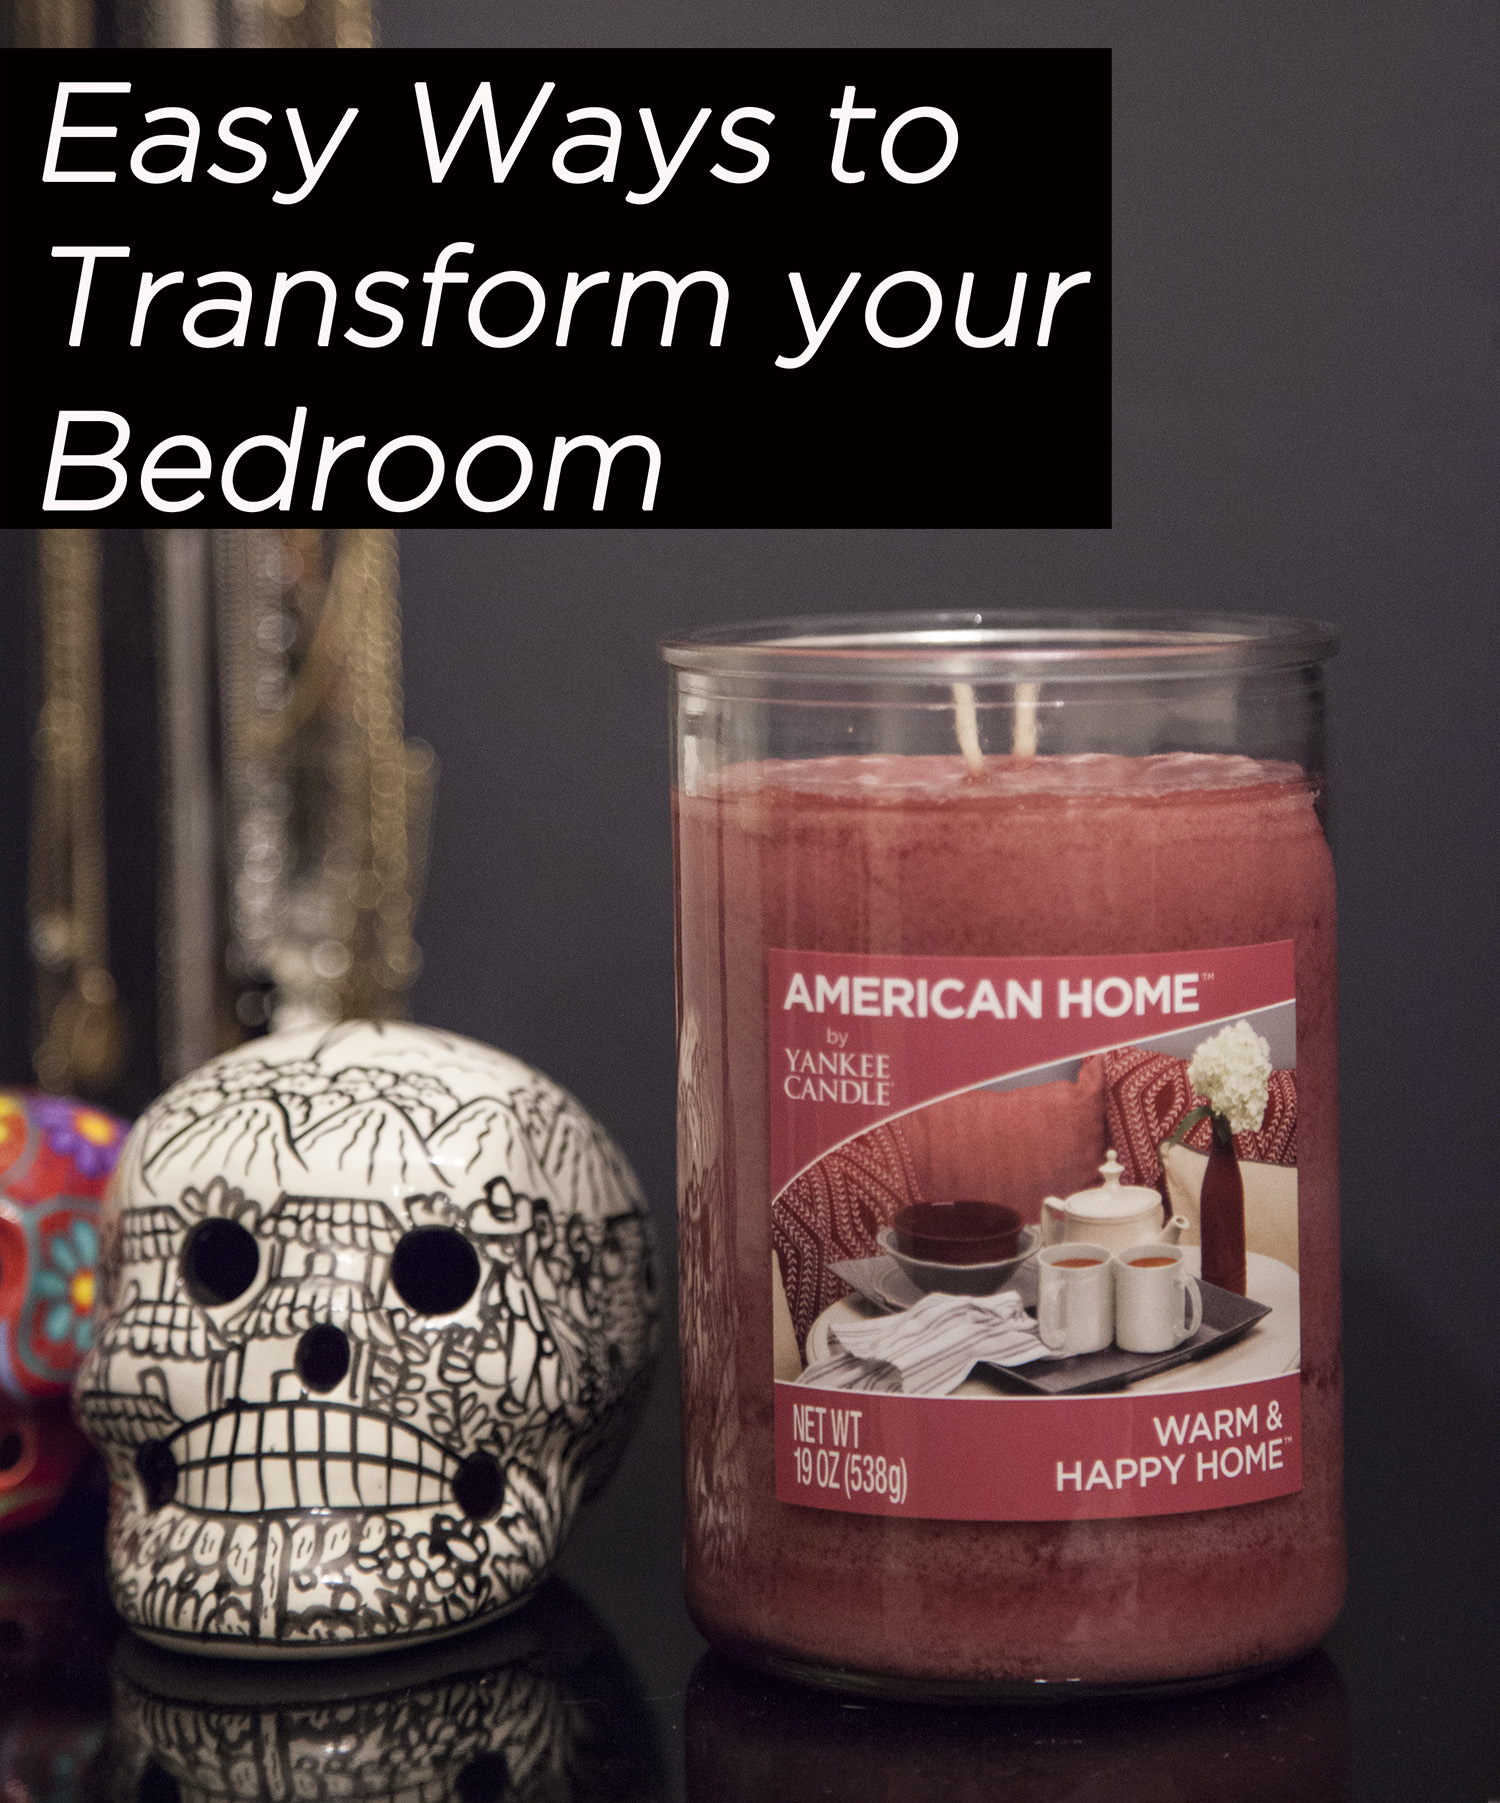 easy_ways_to_transform_your_bedroom_apartment_renovations.jpg